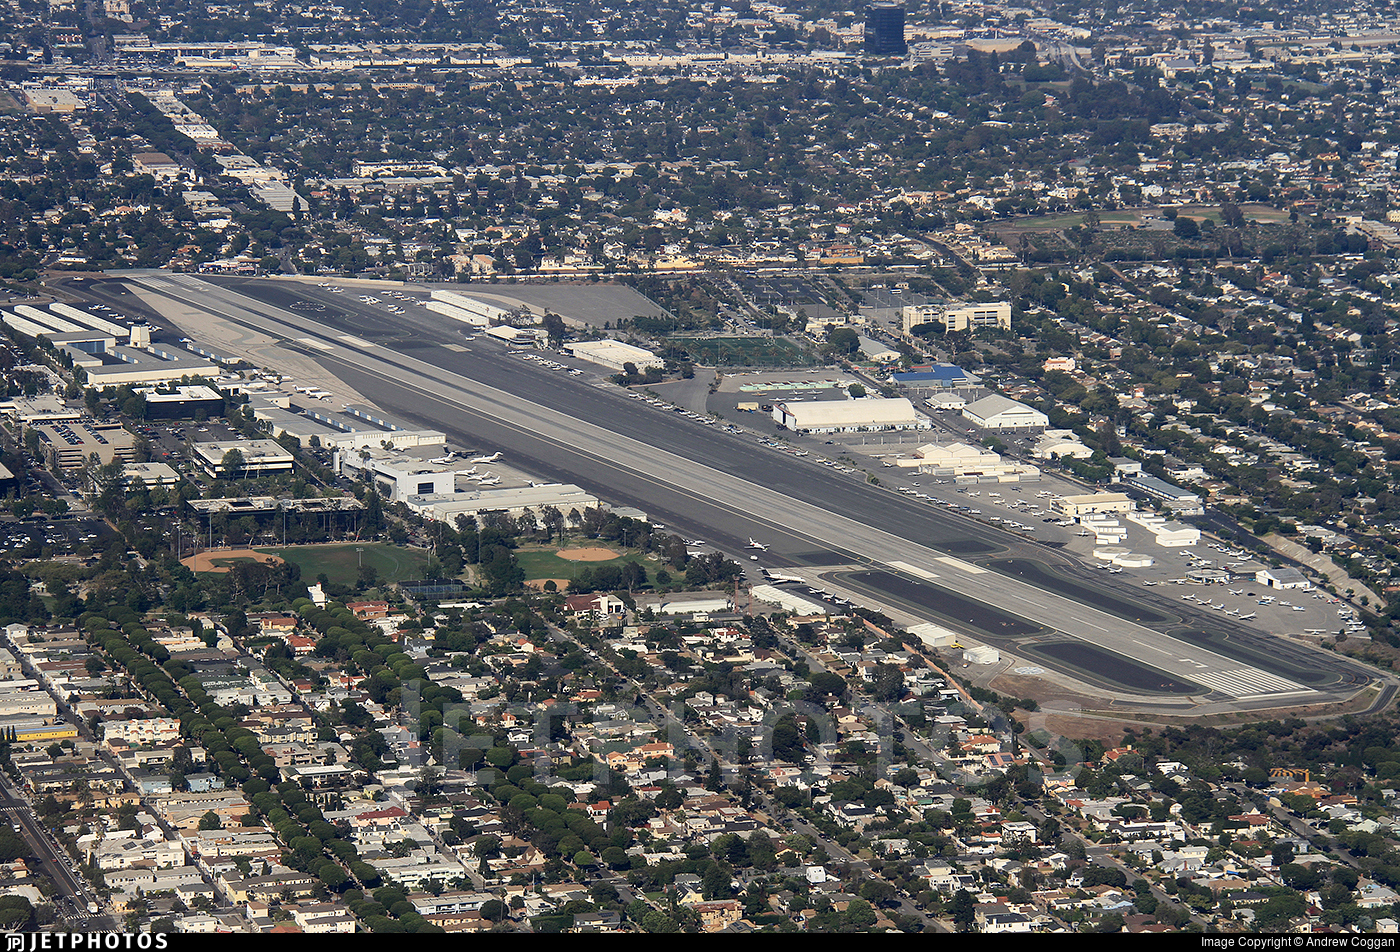 KSMO - Airport - Airport Overview